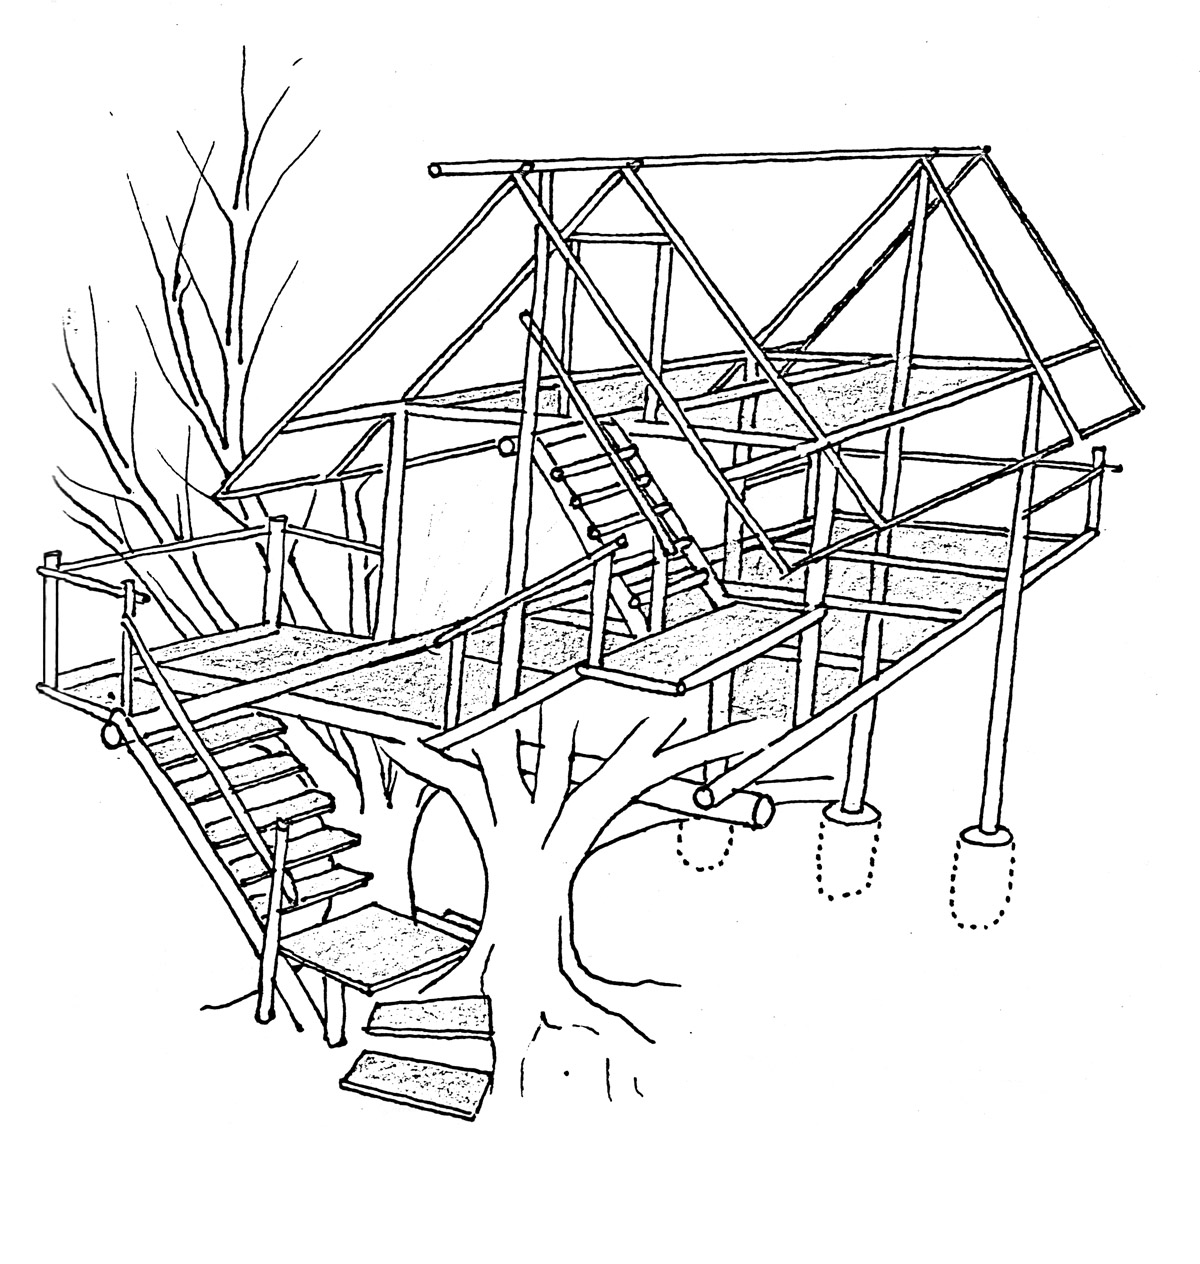 treehouse coloring pages treehouse coloring sheets xyzcoloring coloring treehouse pages